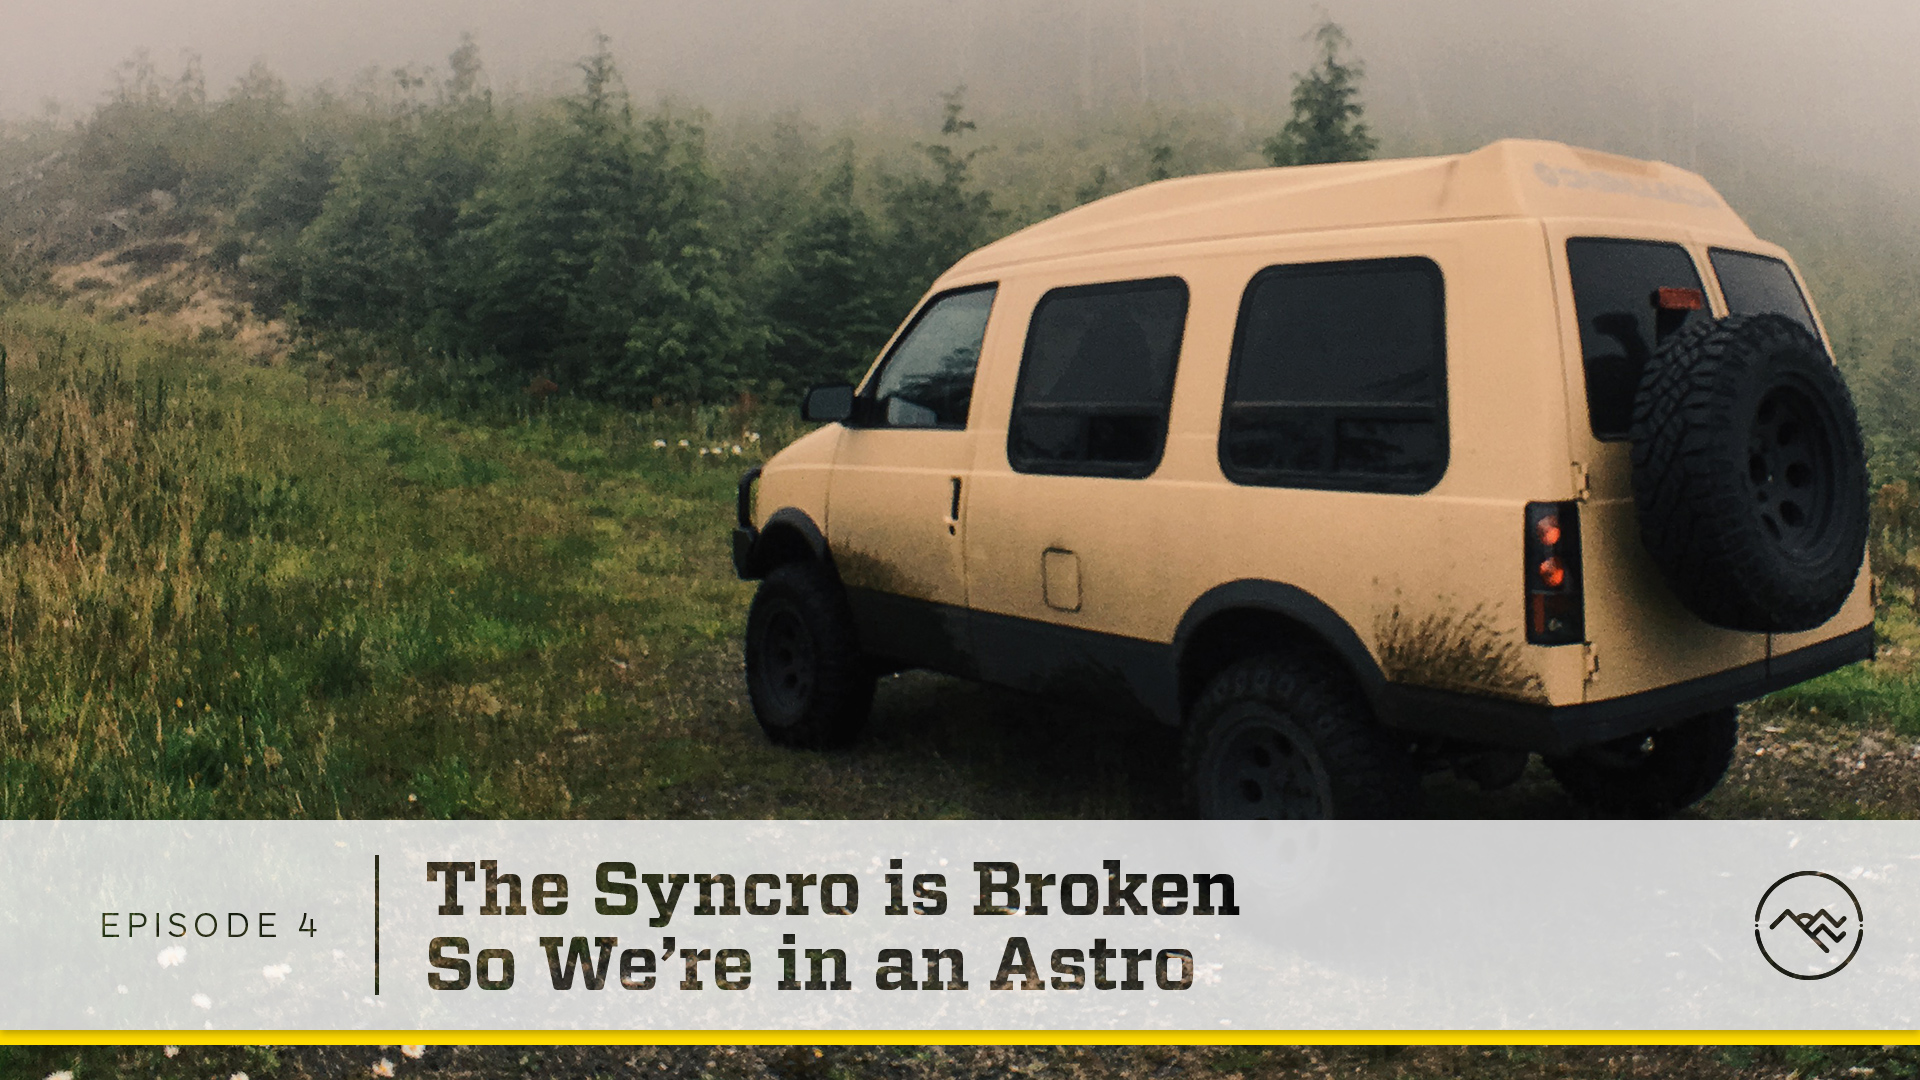 E04 : The Syncro is Broken so We're in an Astro